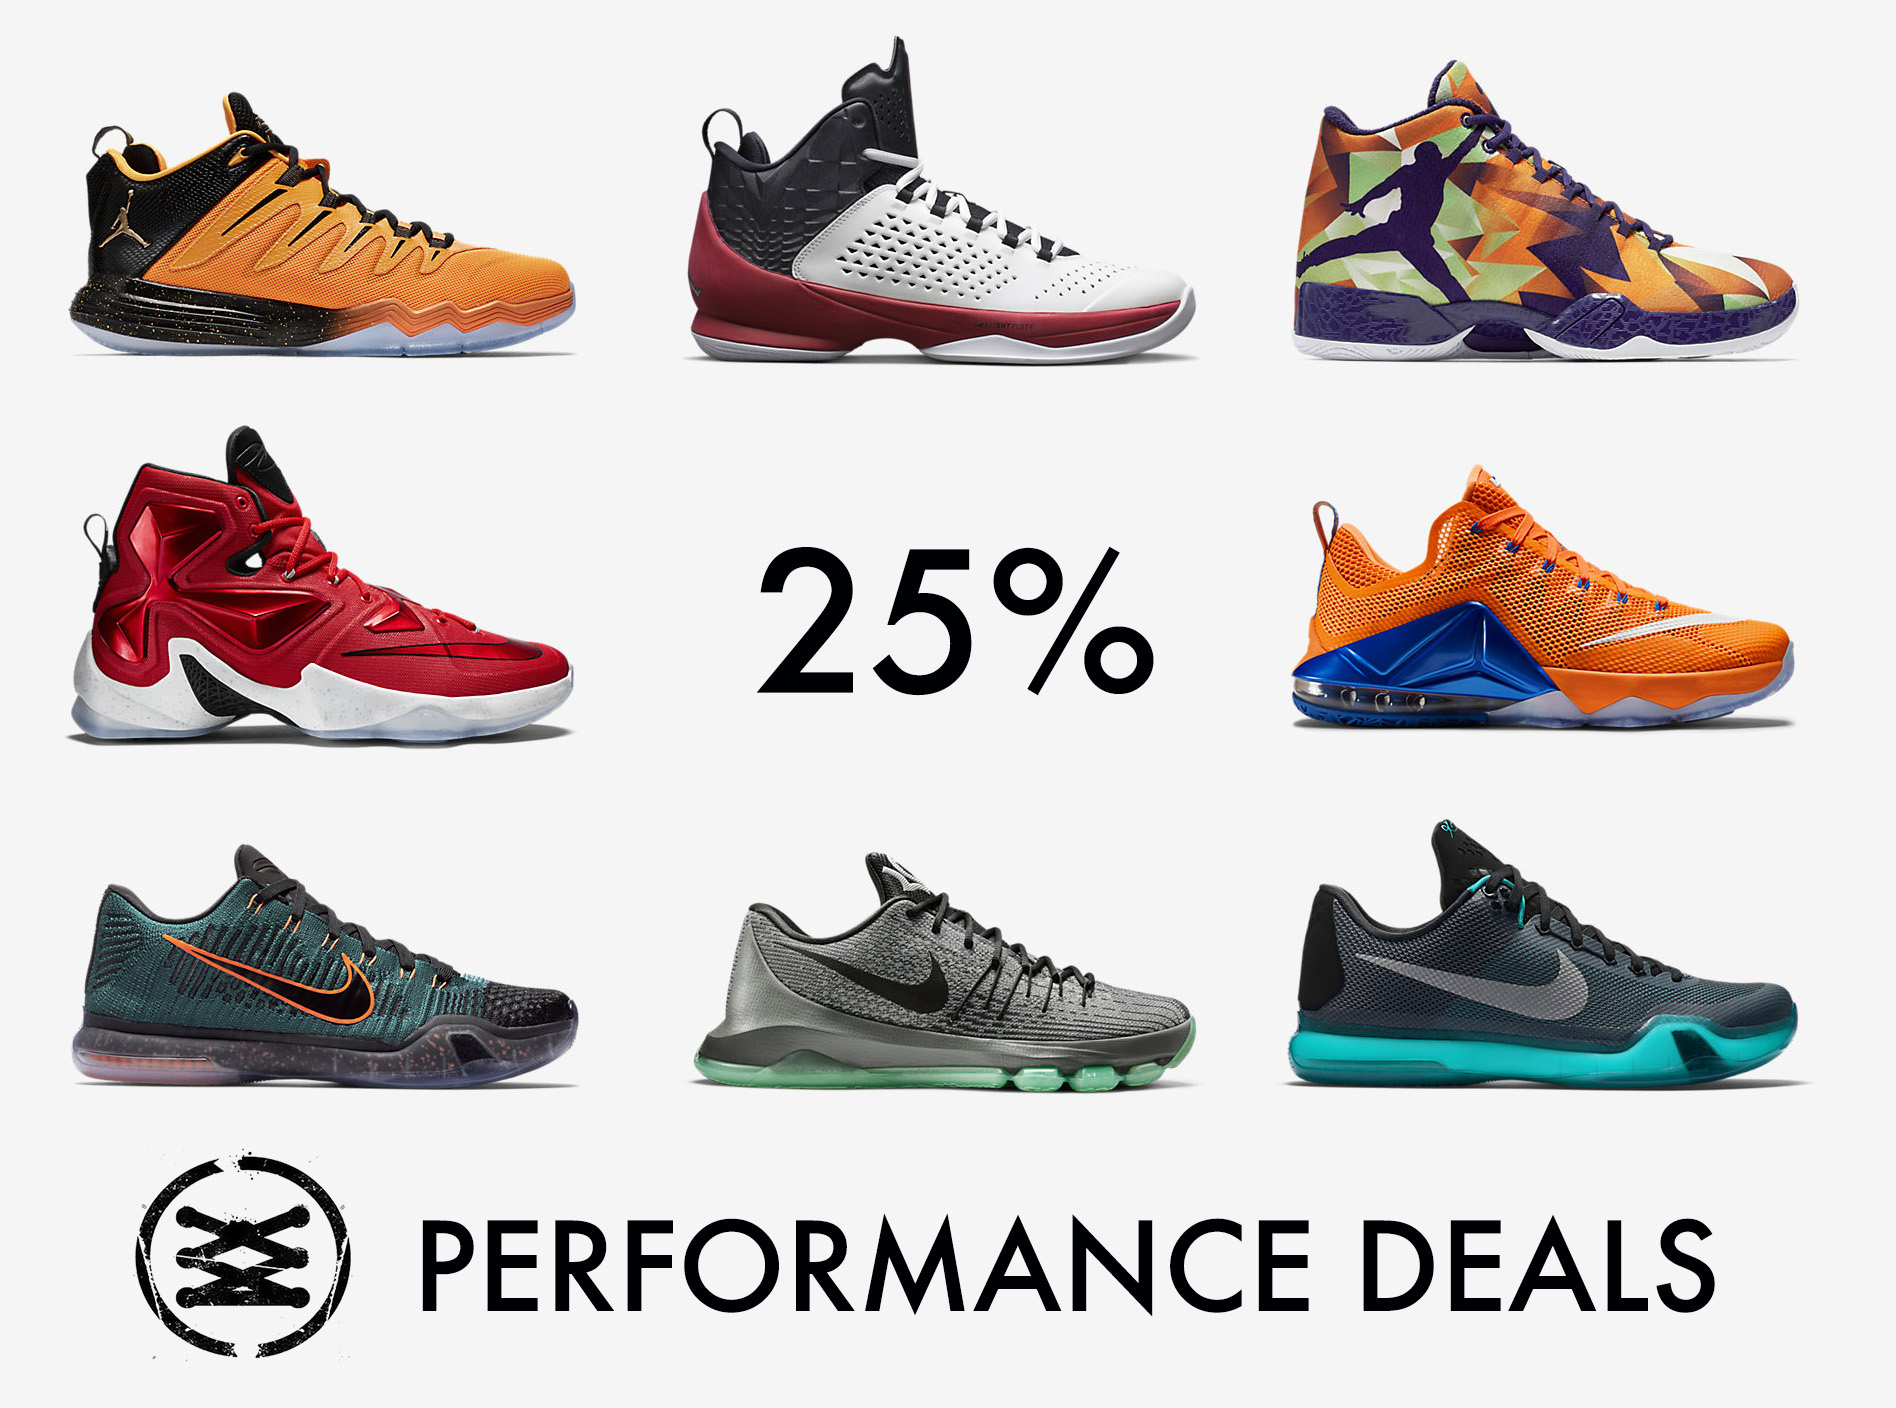 Performance Deals  25% Off Clearance Basketball Shoes at Nike ca48e3ad5